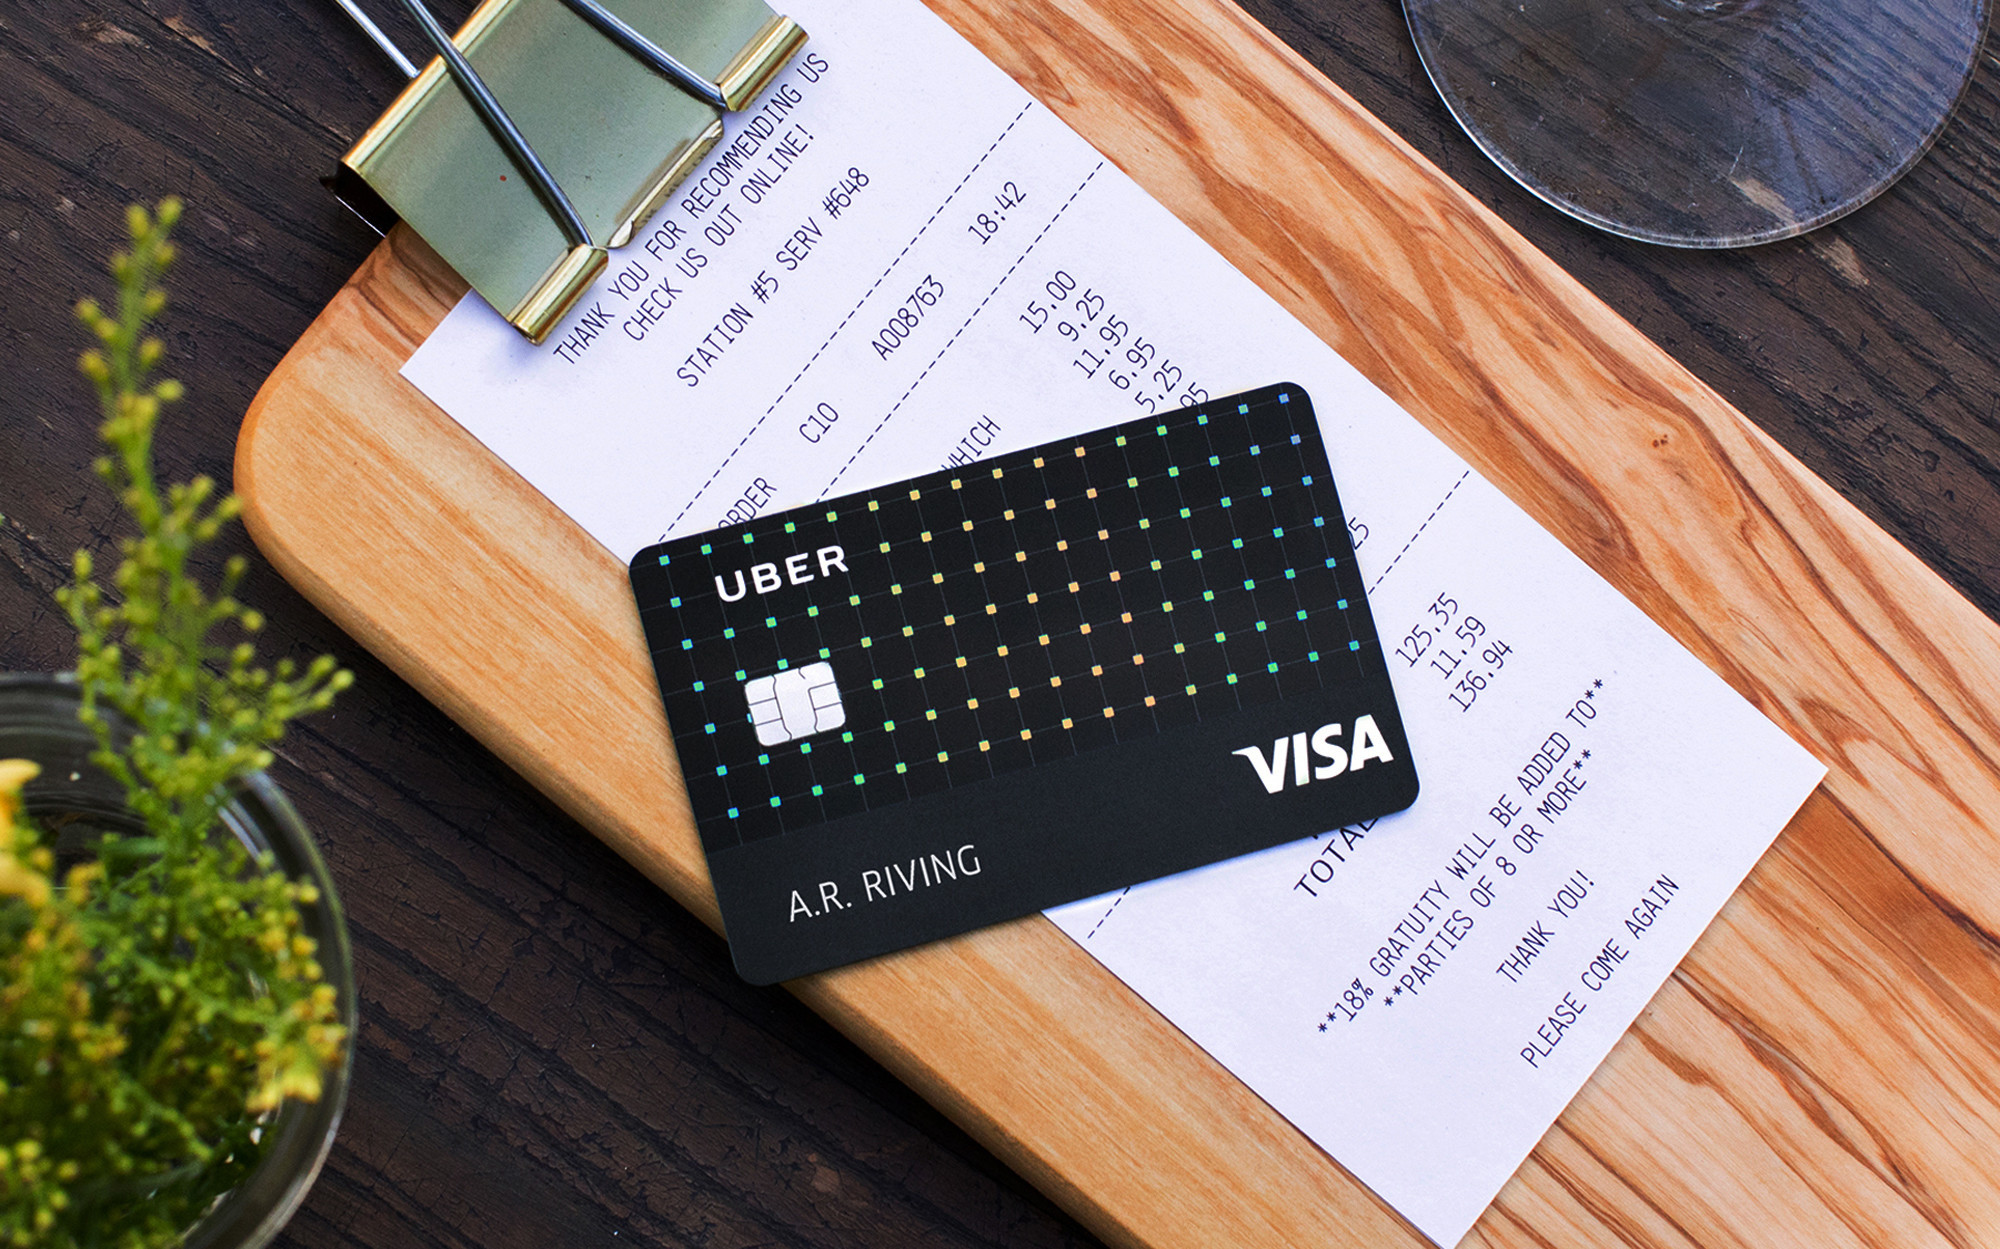 Uber rides into credit card market with no-fee credit card ...